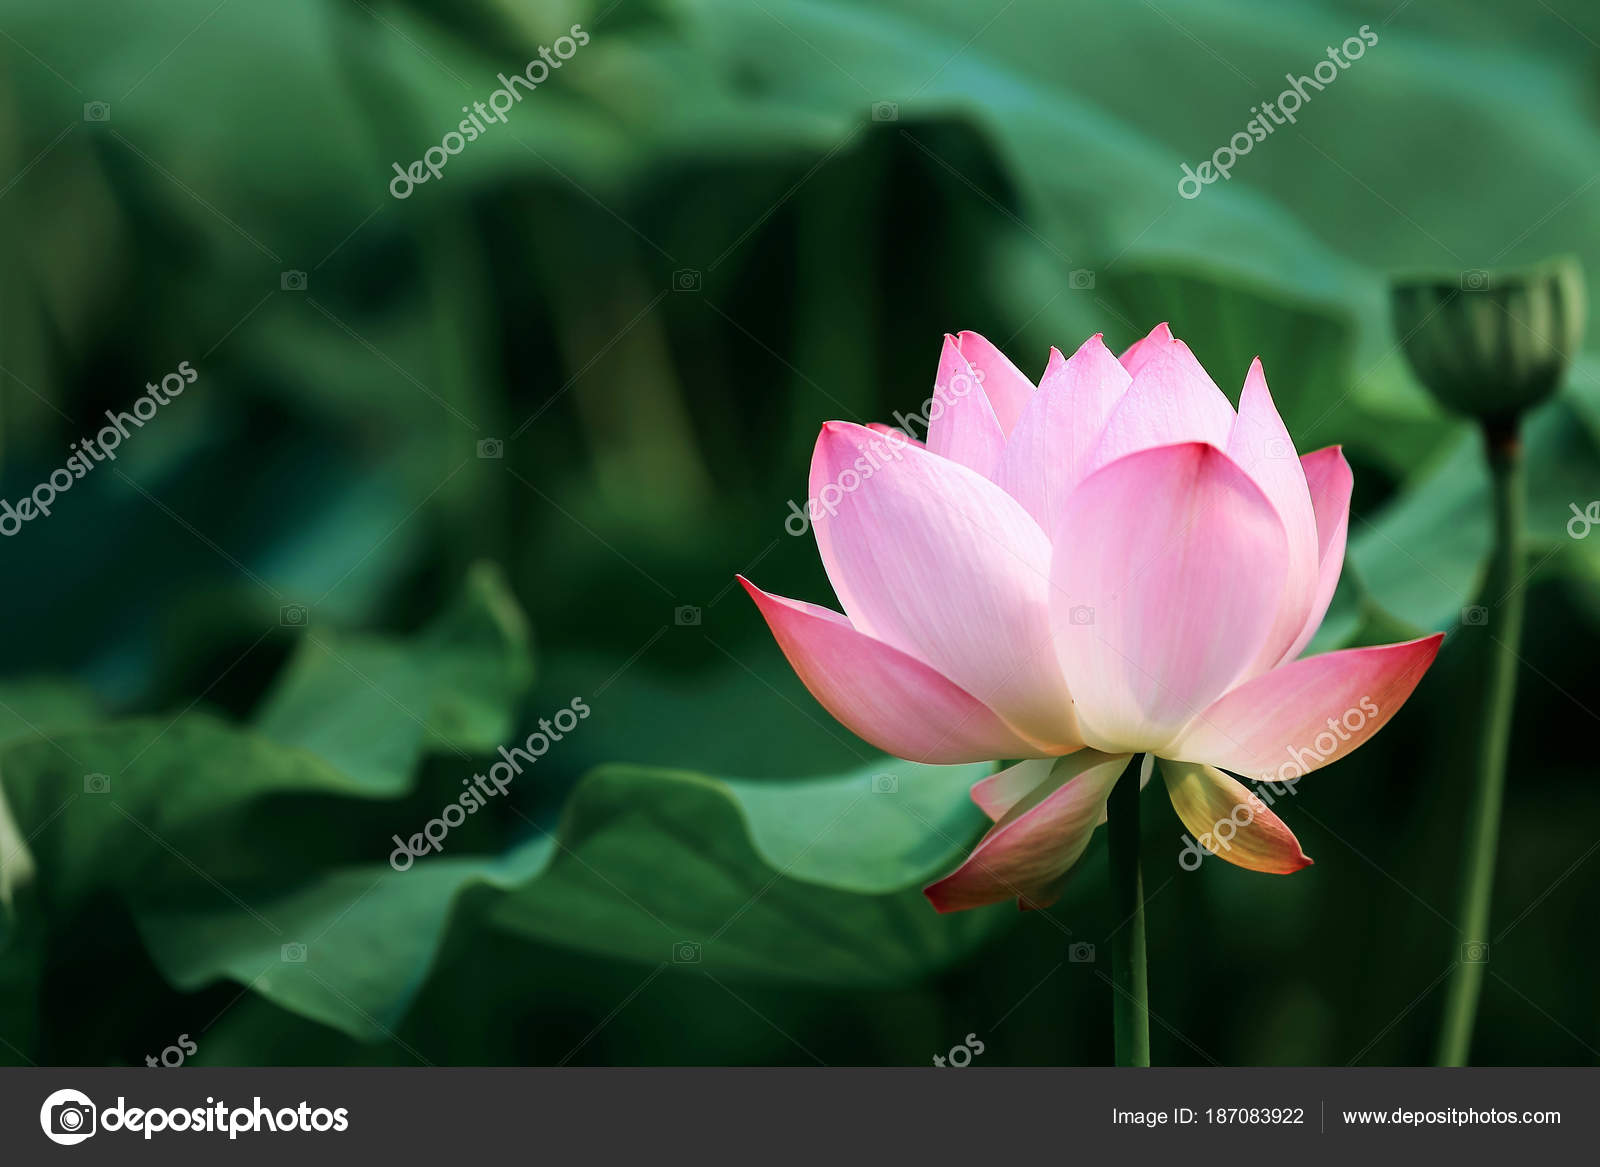 Pink Lotus Flower Green Leaf Stock Photo C728hotmail